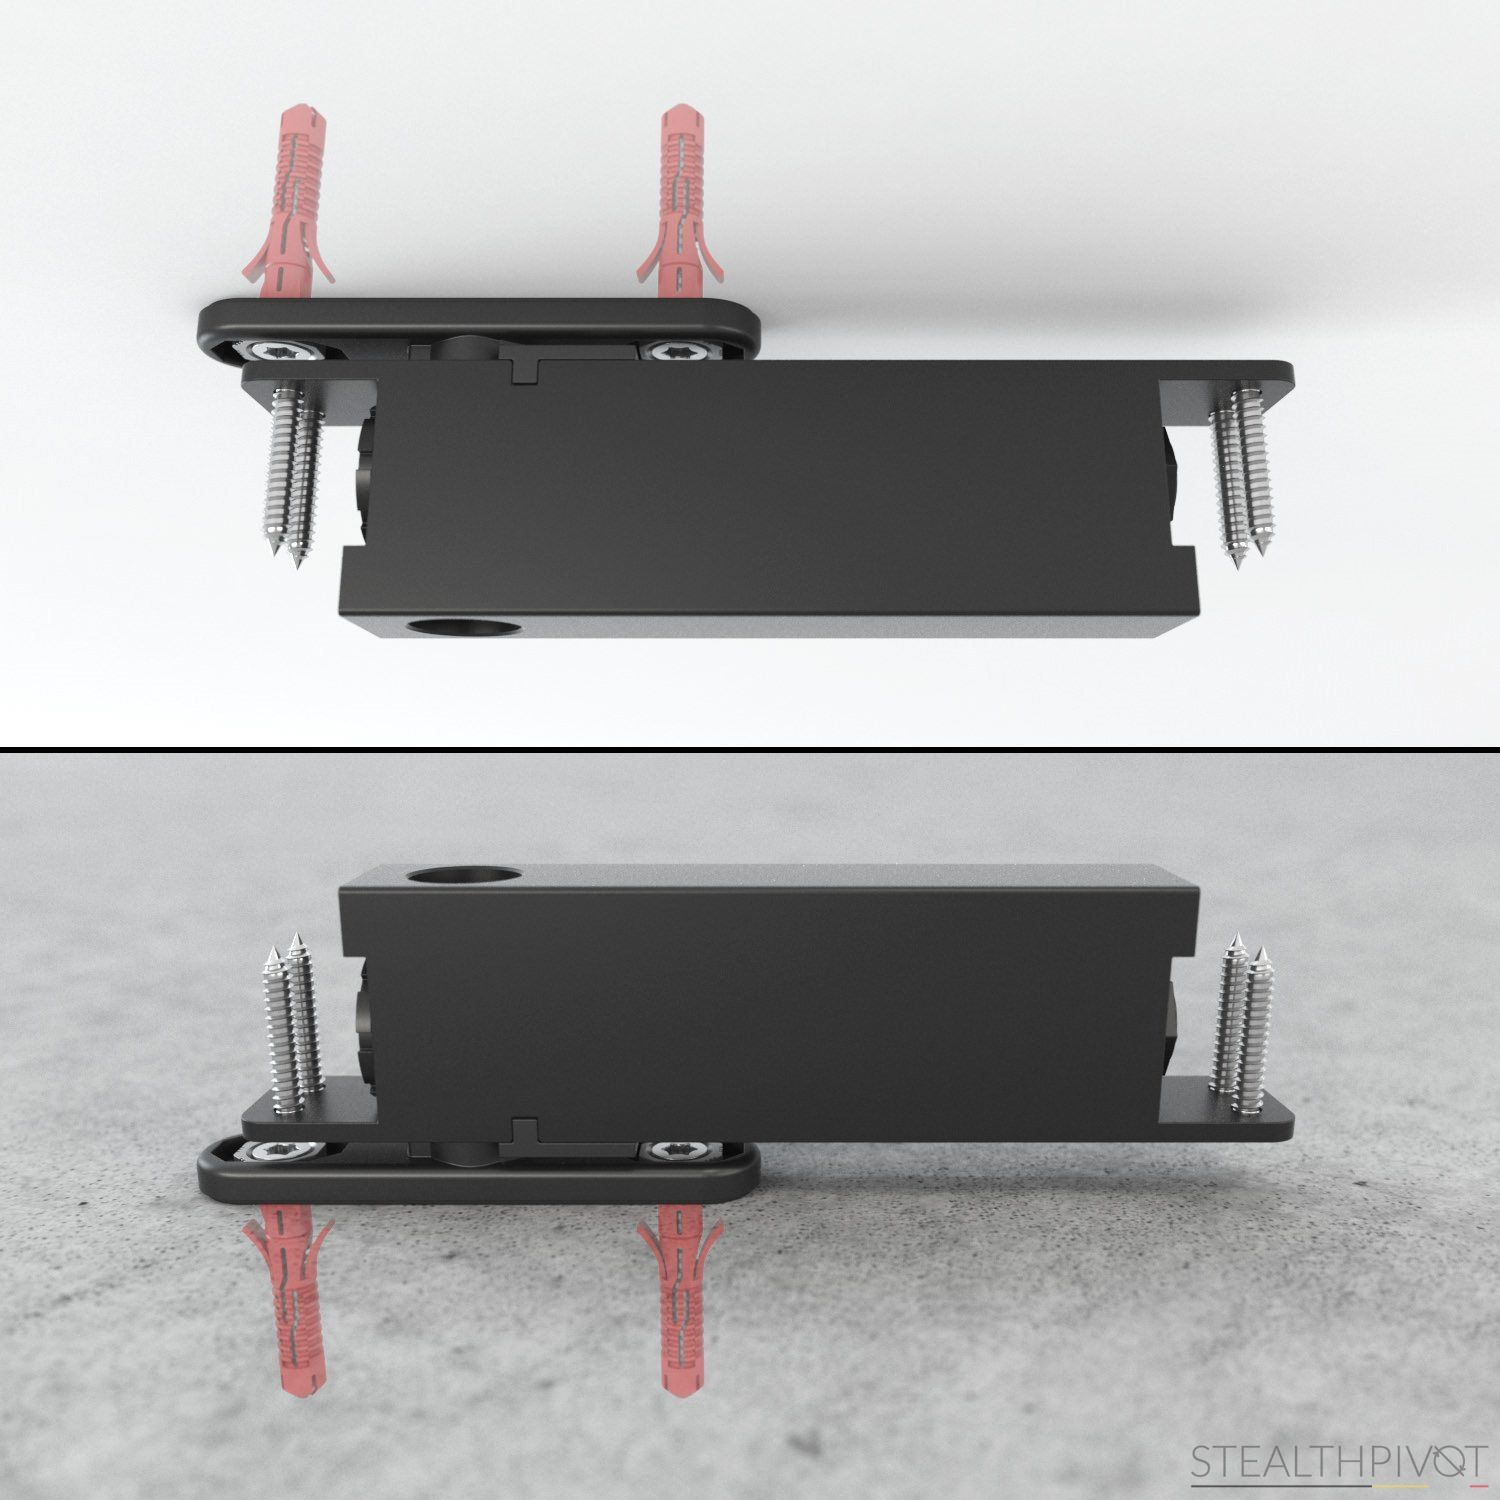 pivot hinge without any built-in parts